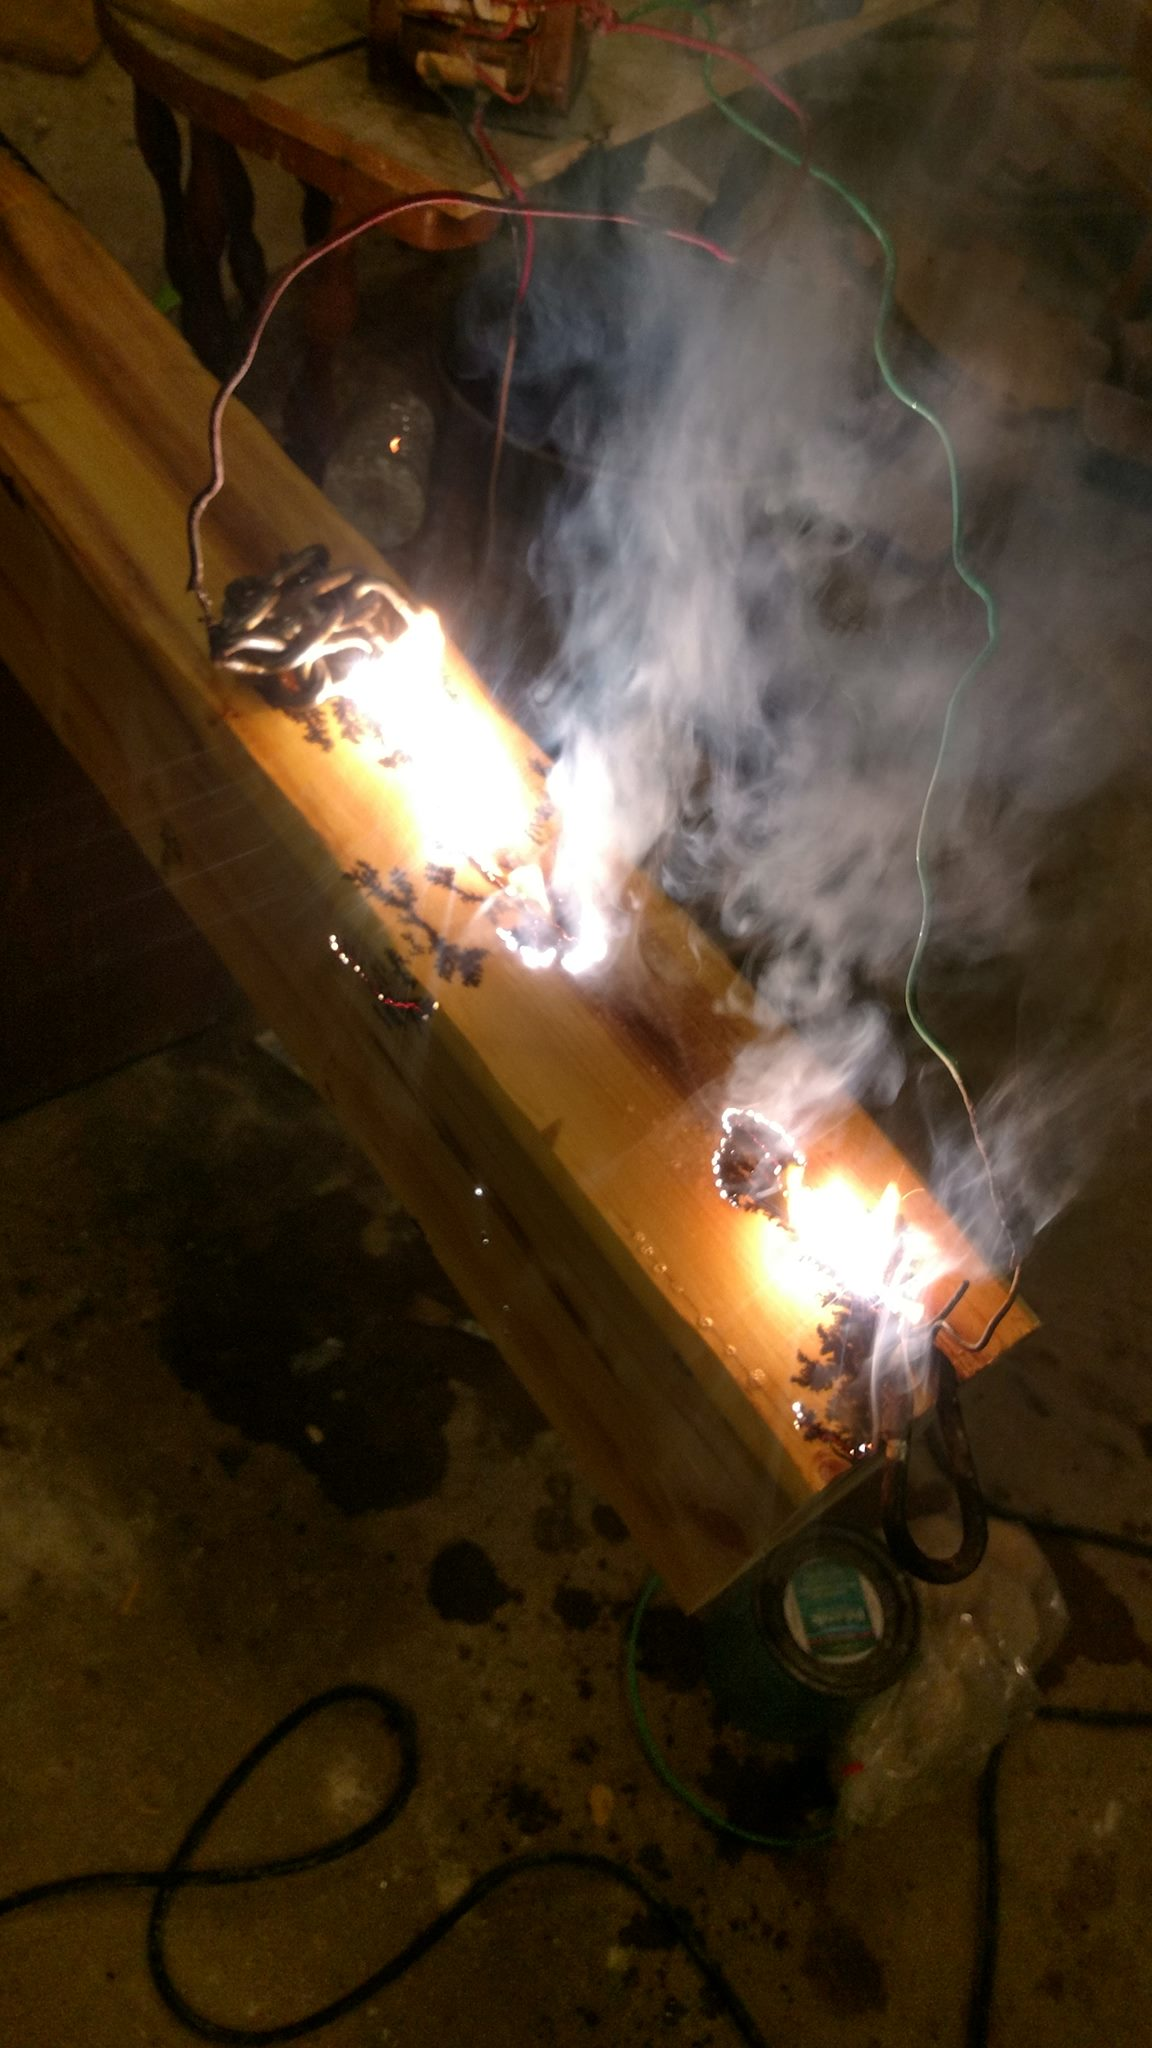 Electrifying the wood is a rather exciting process.